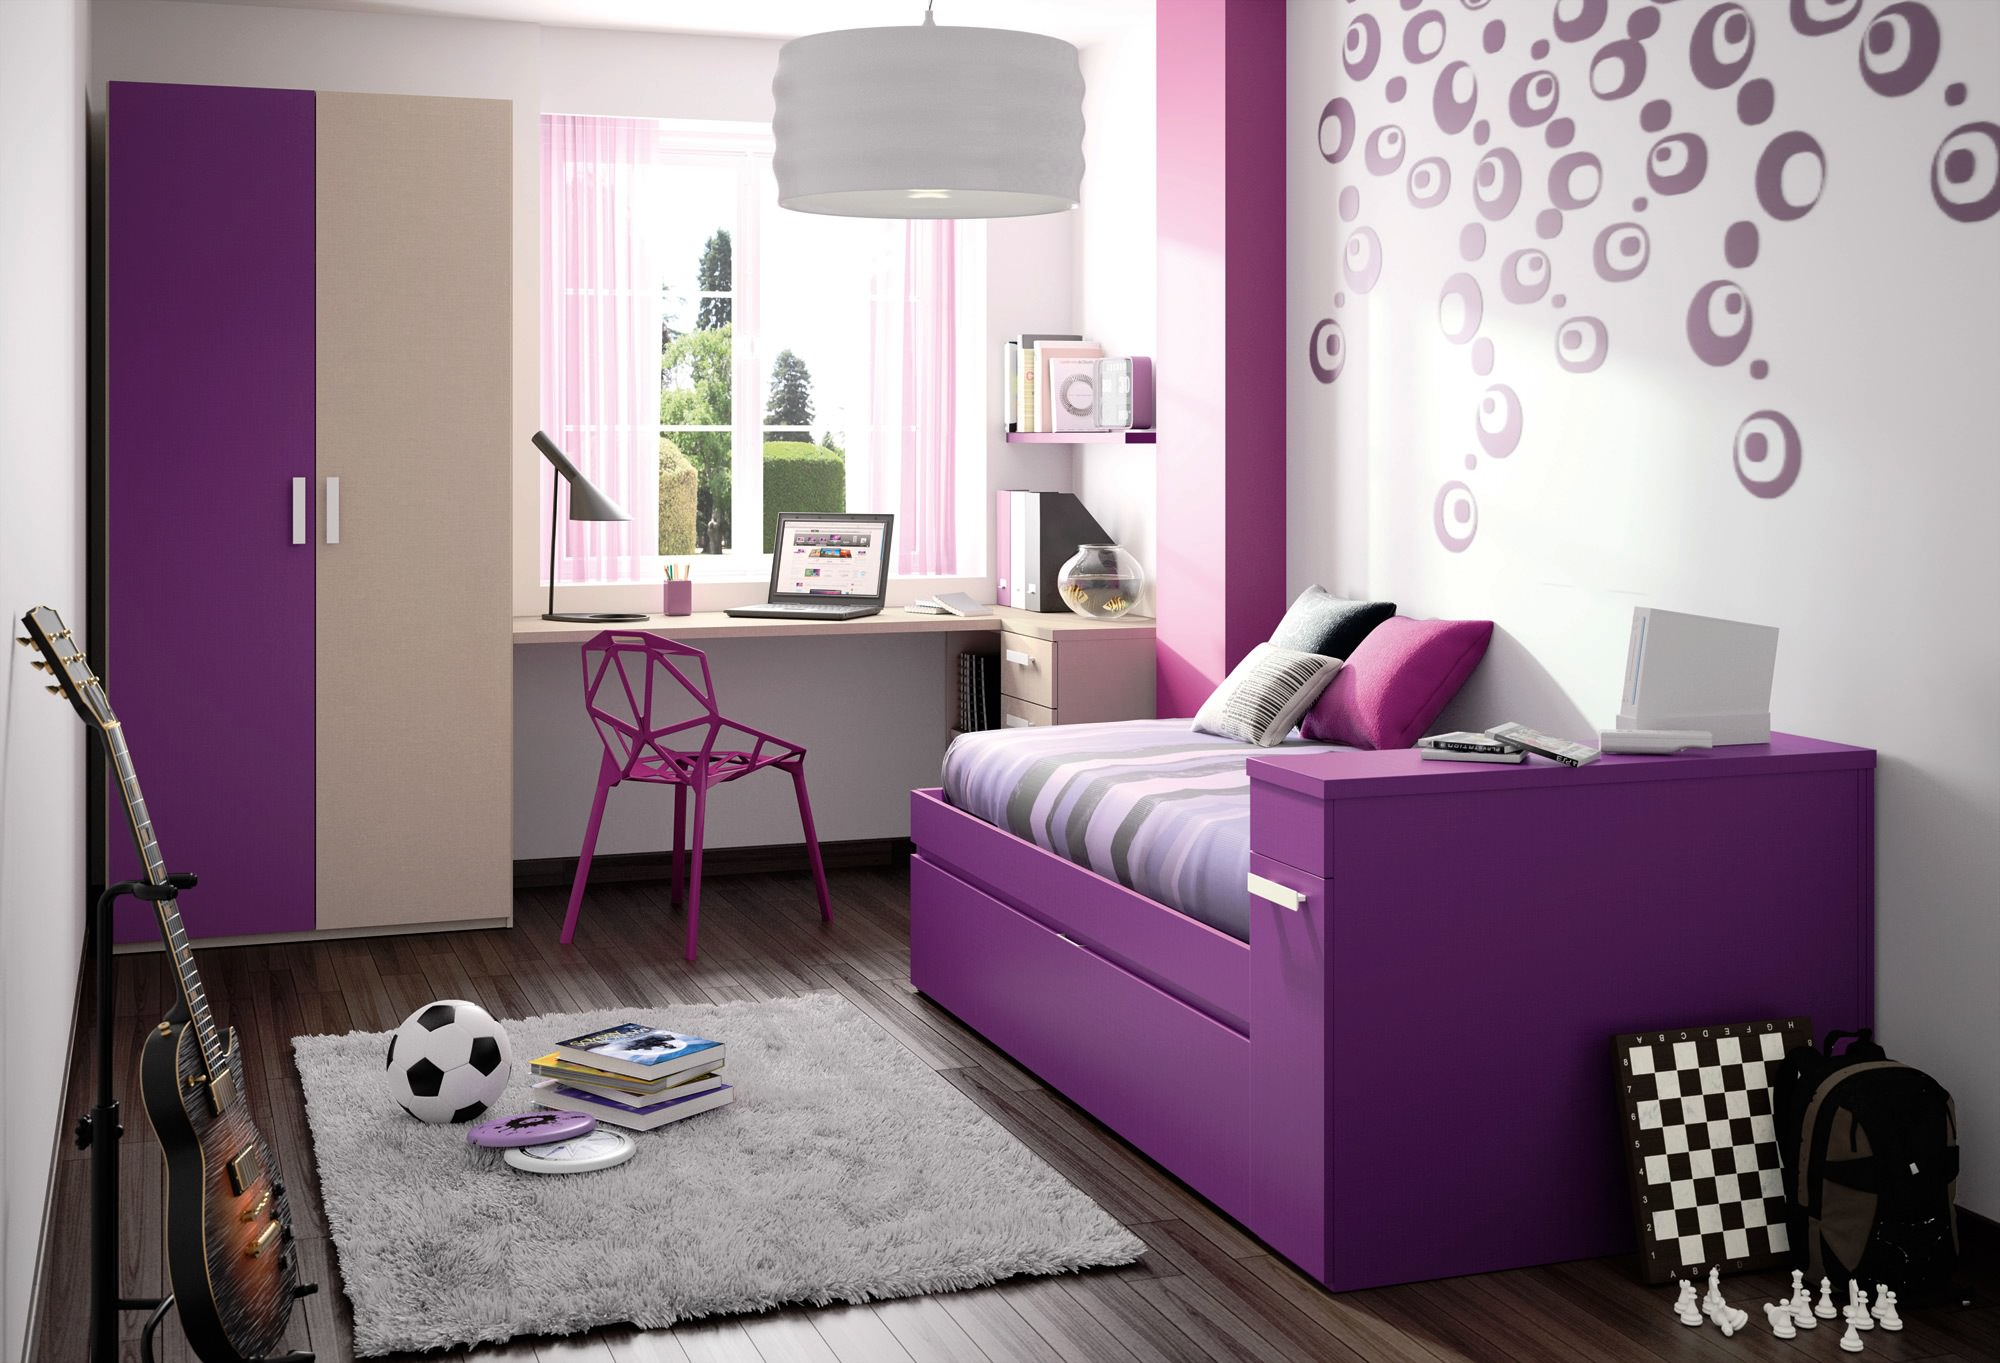 14 Wall Designs Decor Ideas For Teenage Bedrooms  Design Trends  Premium PSD Vector Downloads